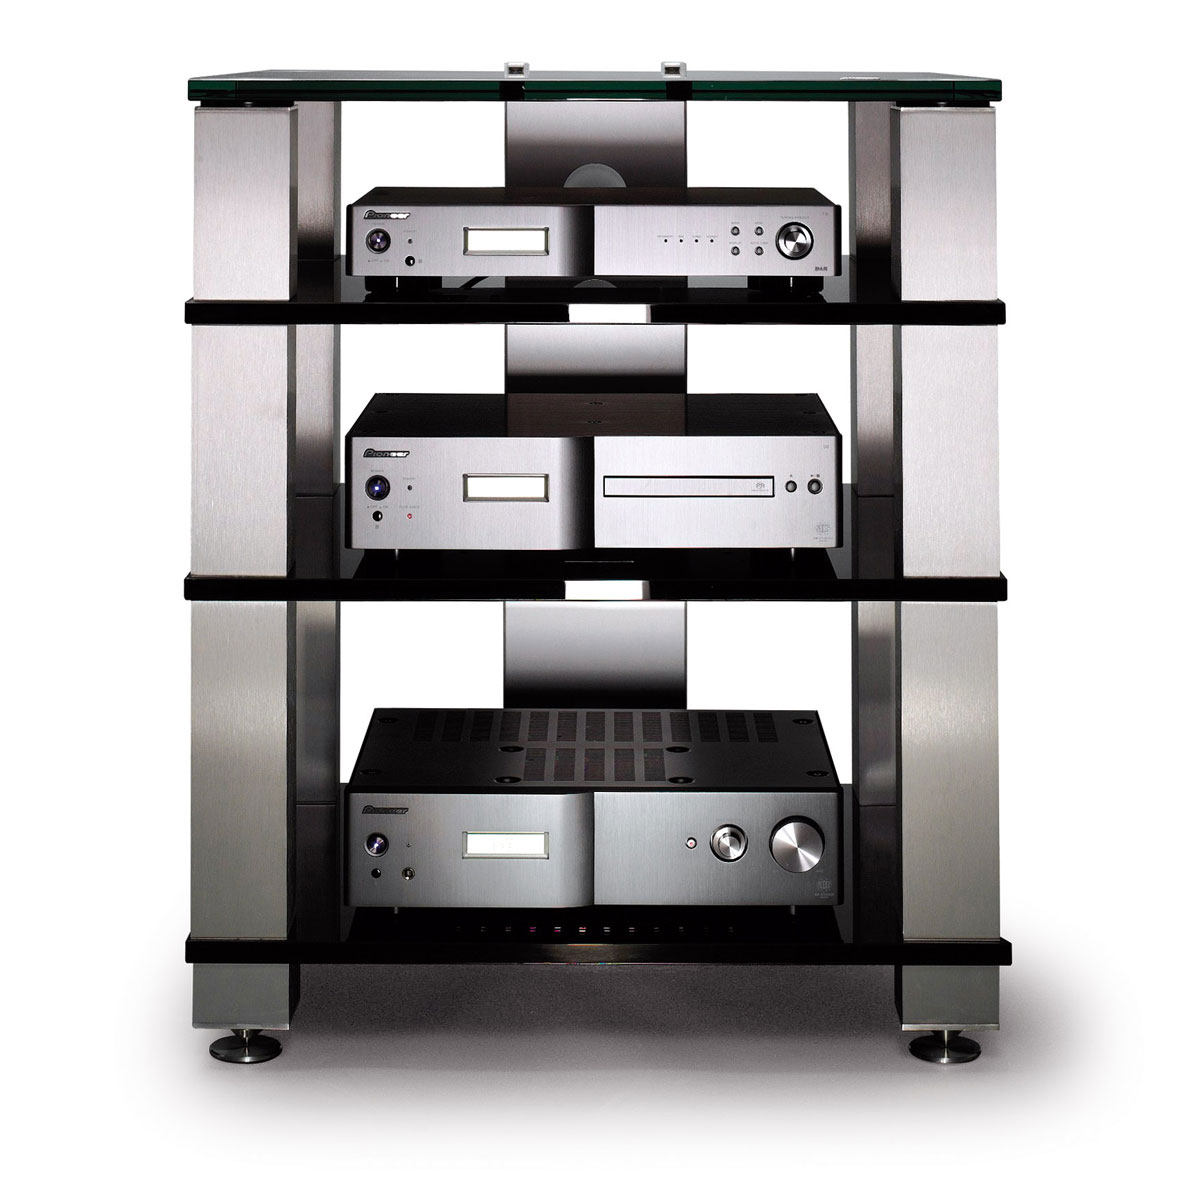 Hifi rack wand  Hifi-Möbel, Phonomöbel, Hifi-Racks, Hifi-Regale, Audio-Möbel bei ...